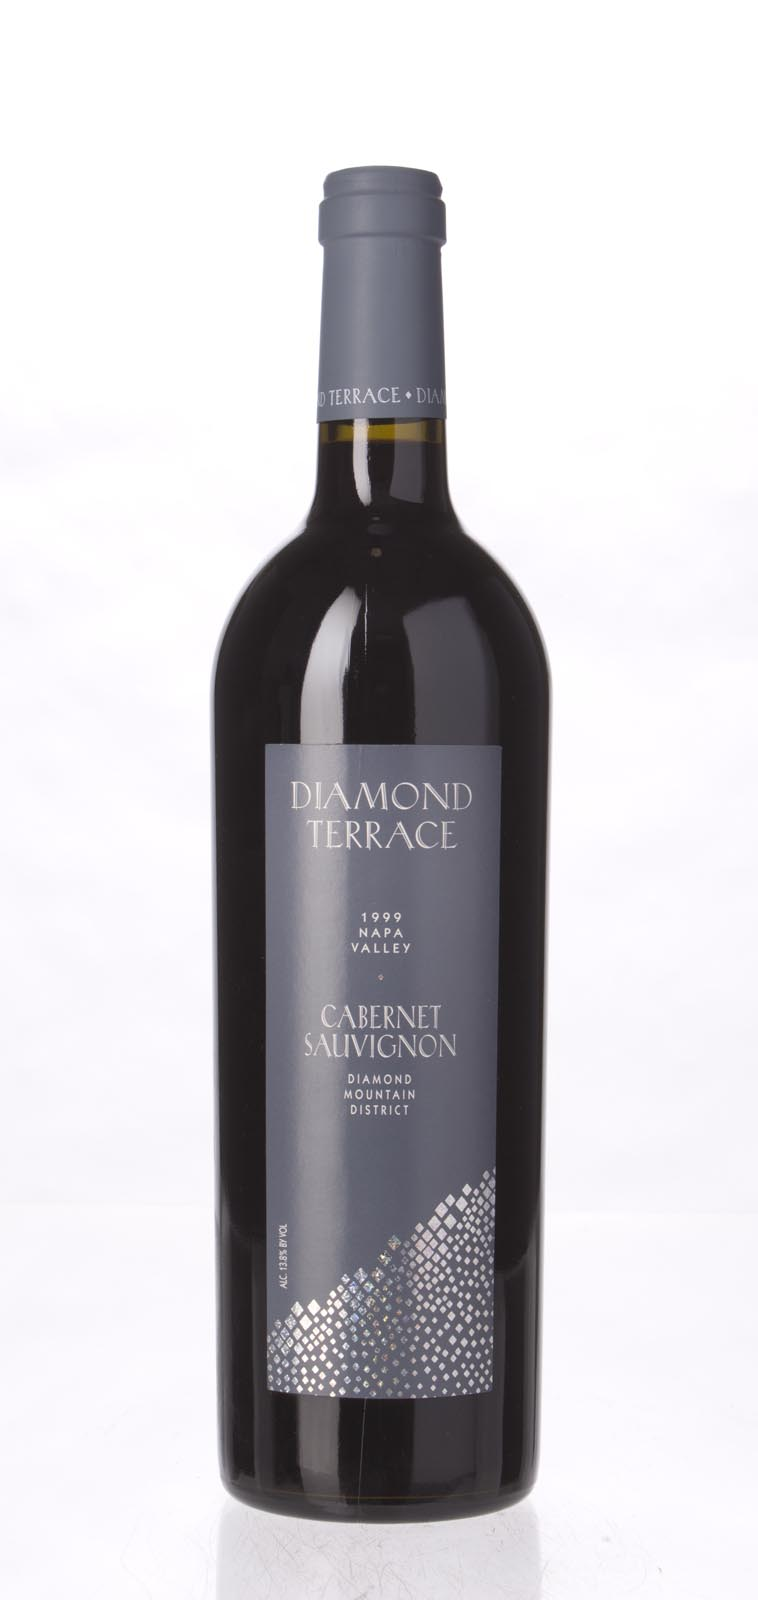 Diamond Terrace Cabernet Sauvignon Diamond Mountain District 1999, 750mL (WS93) from The BPW - Merchants of rare and fine wines.